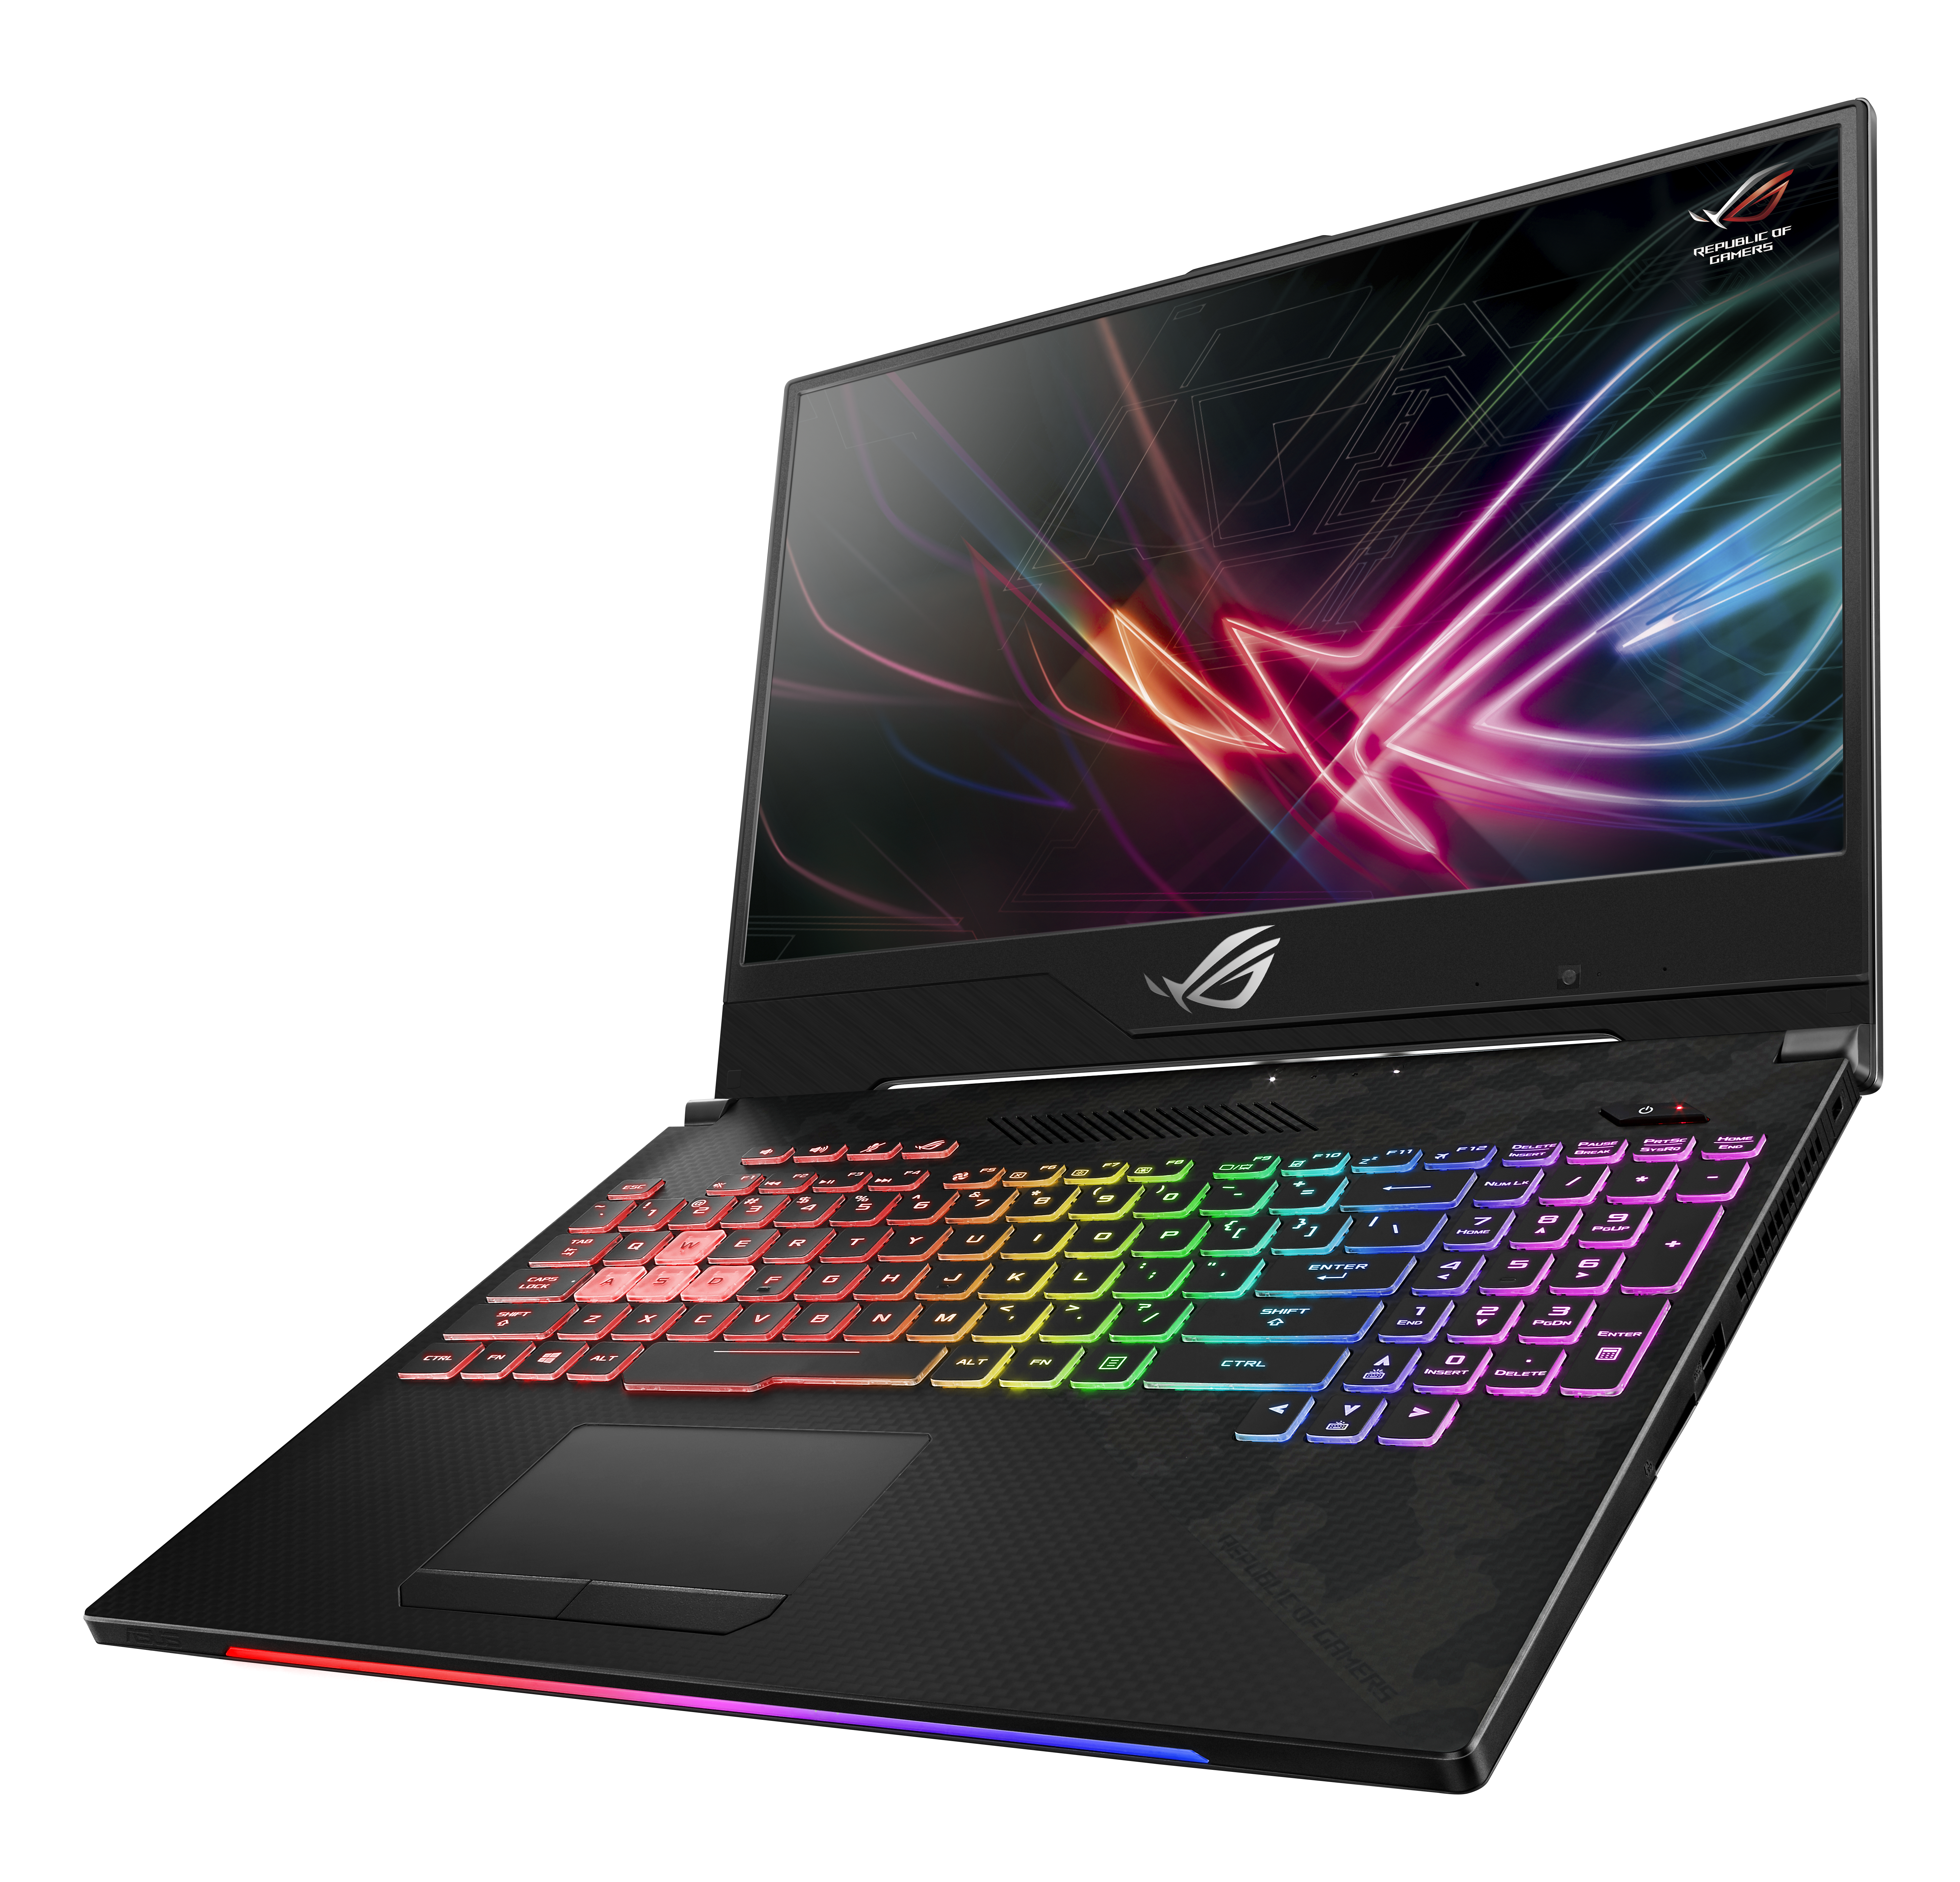 ASUS ROG Strix Hero II & Scar II GL504 Laptops: CFL, 144 Hz